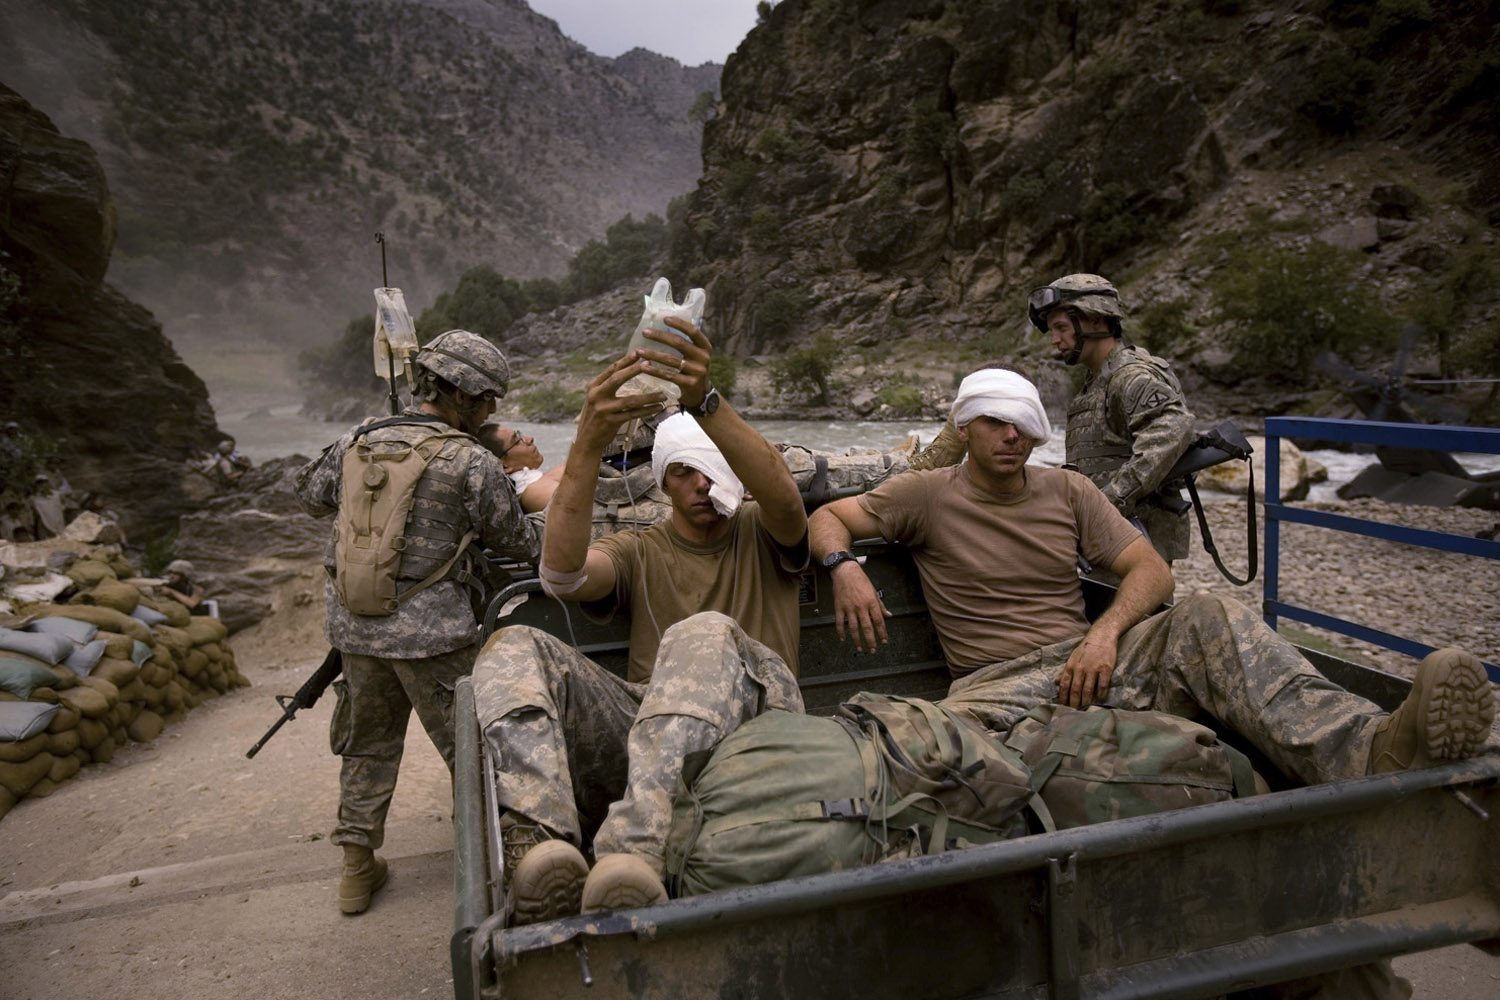 Three wounded US Army soldiers from the 10th Mountain Division who suffered shrapnel wounds to their eyes and foreheads are transported to a helicopter in Kamdesh, Nuristan. August, 2006